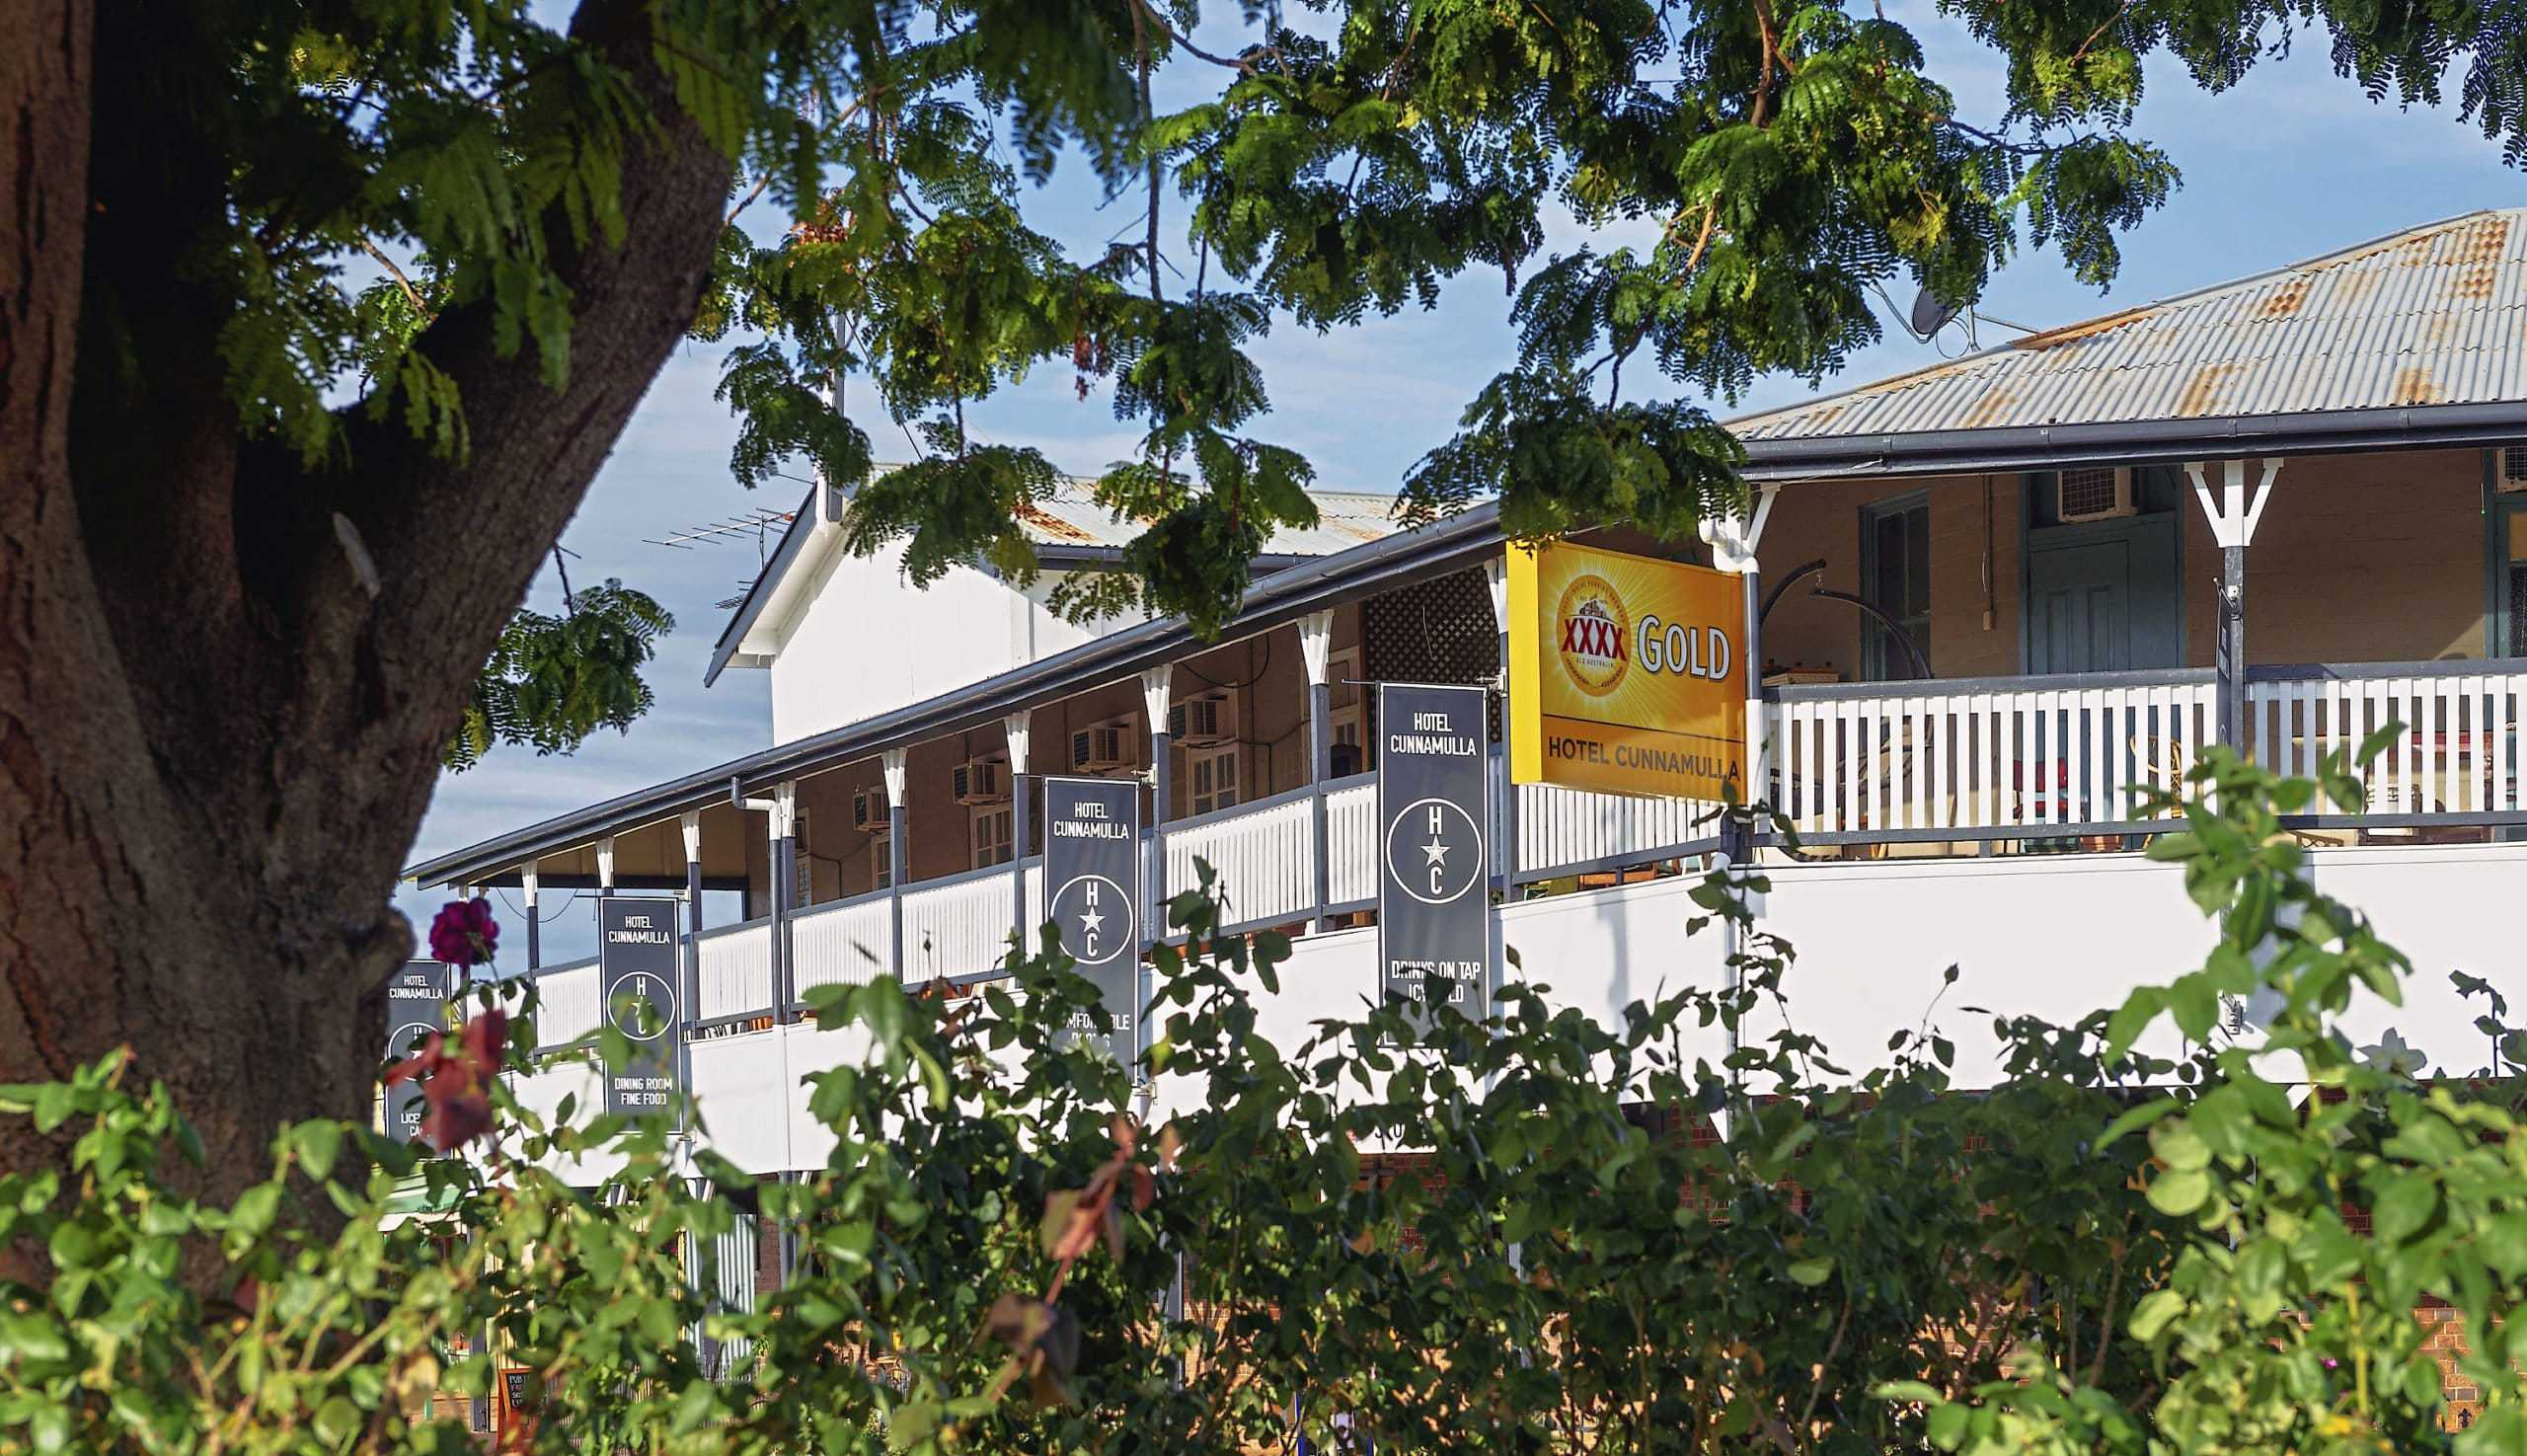 Accommodation and Restaurant Meals in Cunnamulla Queensland.